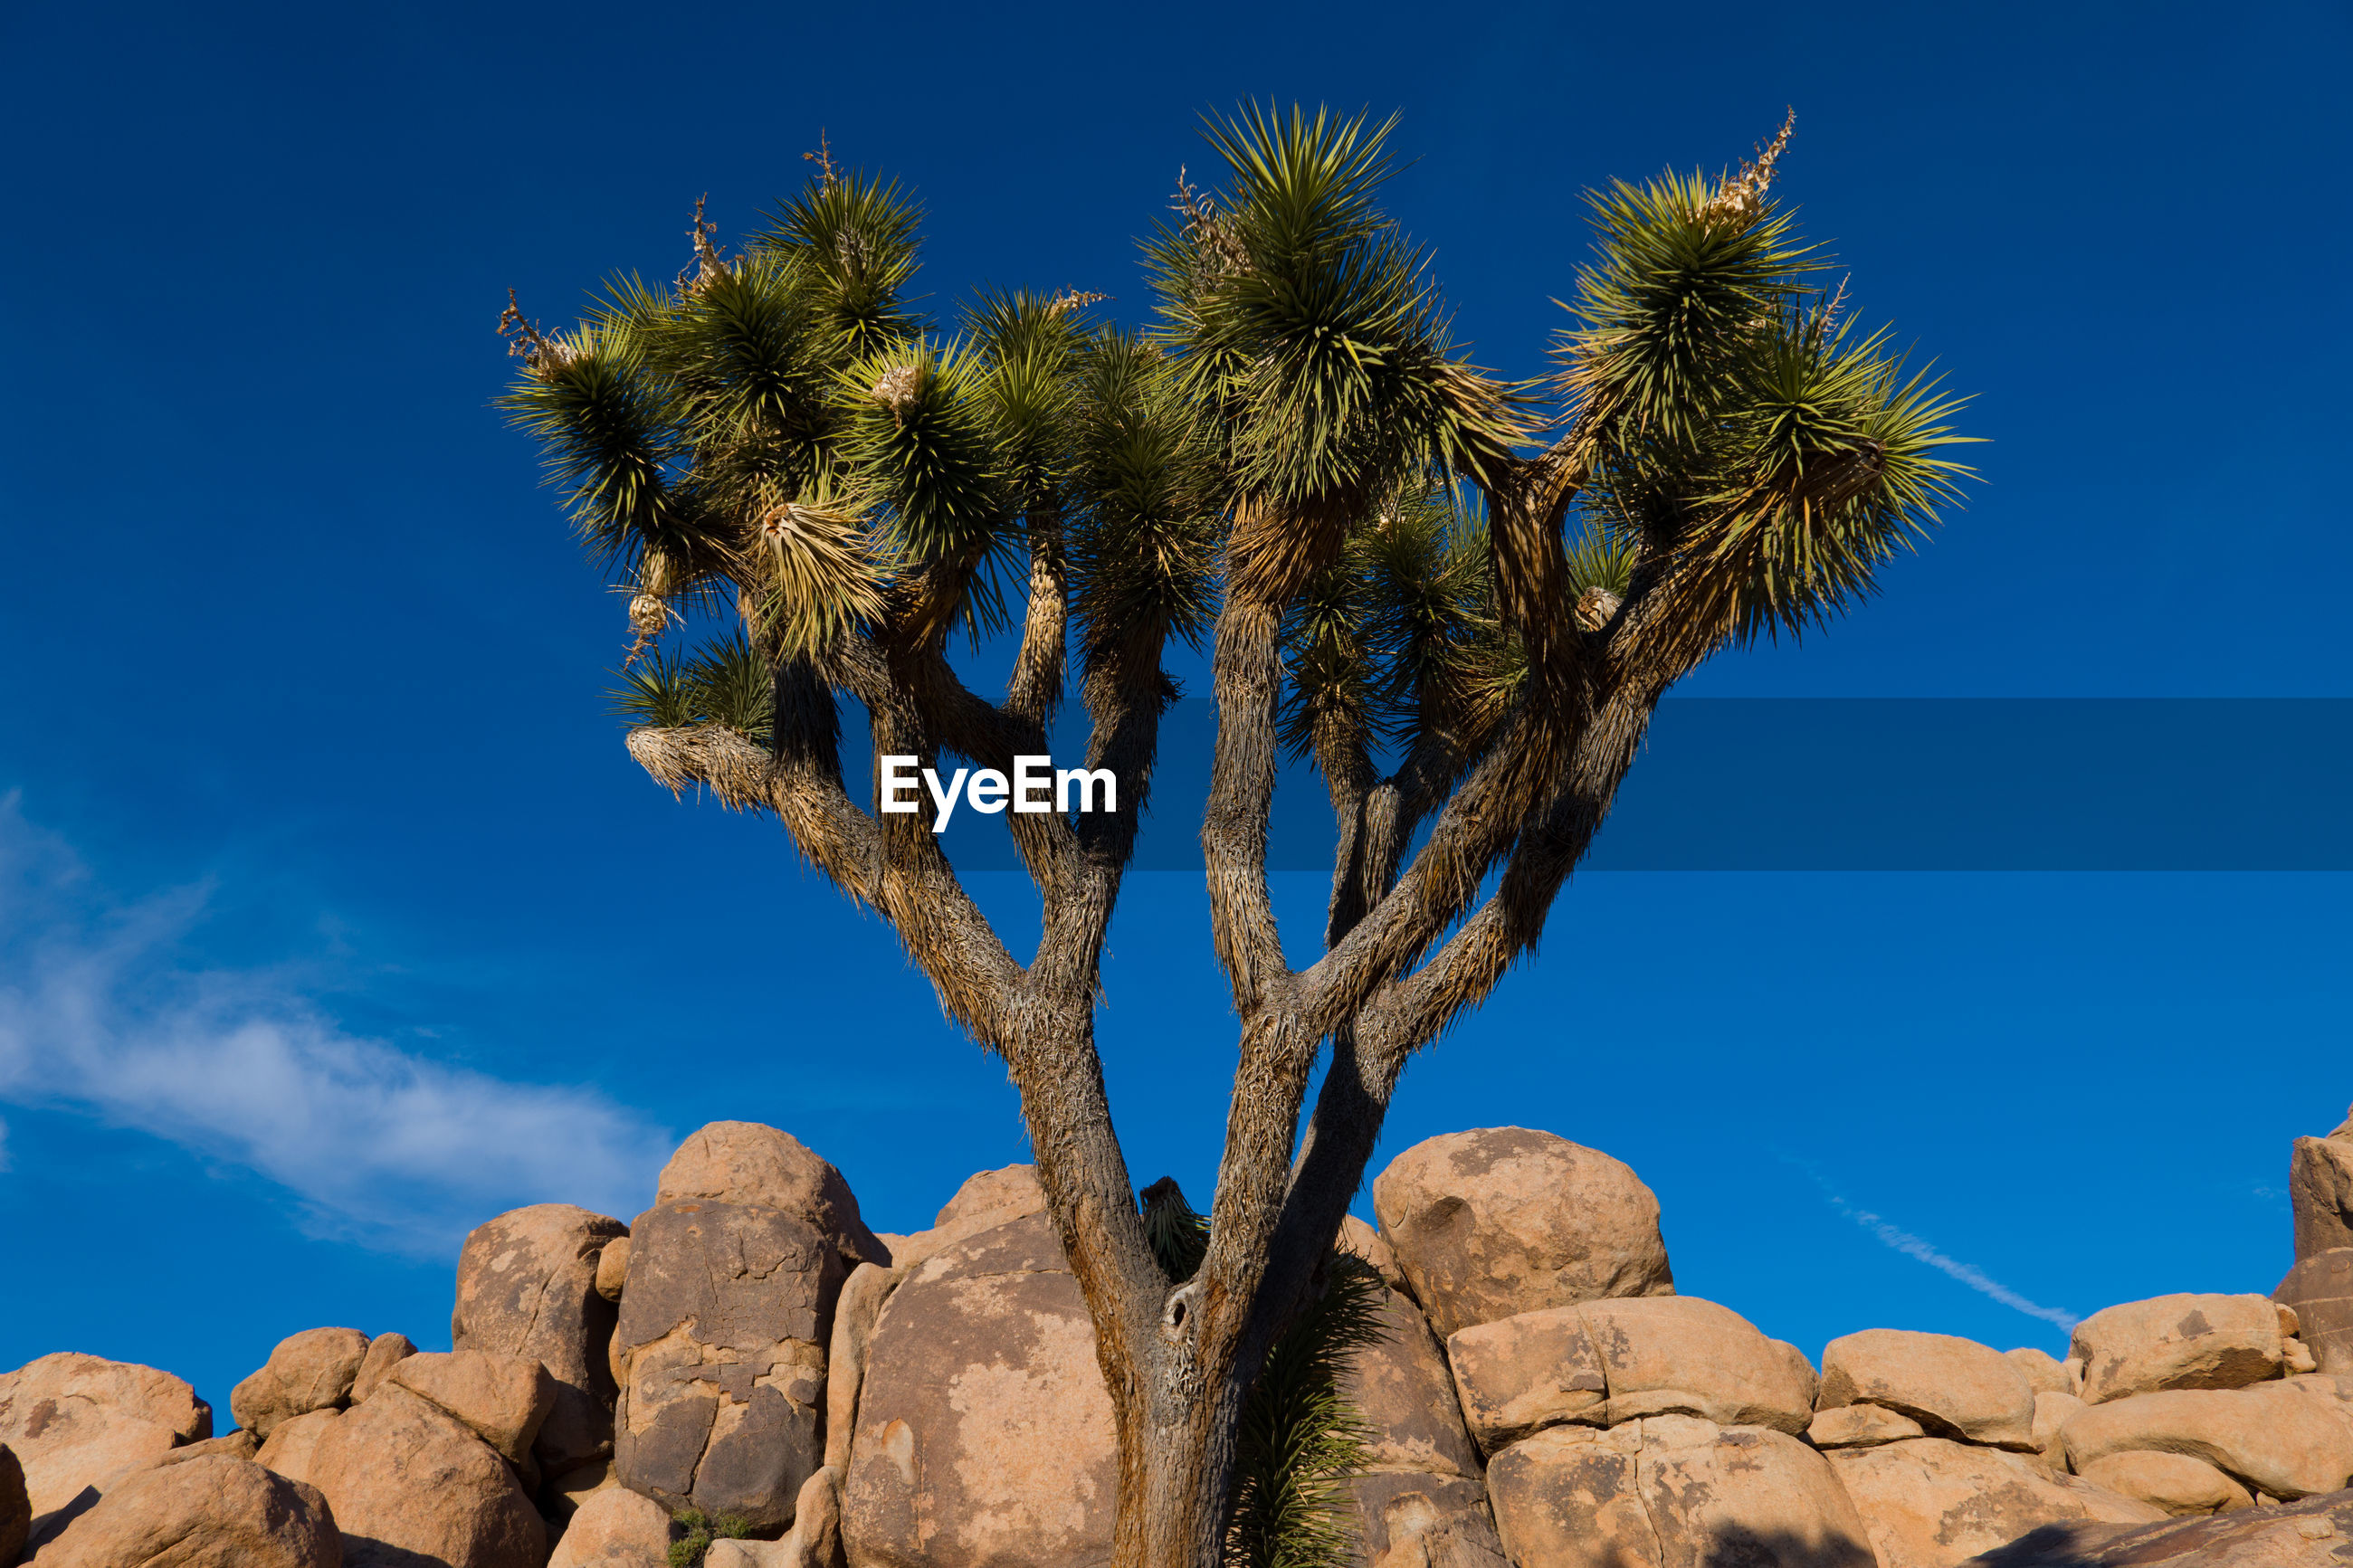 Low angle view of cactus growing on rock against blue sky